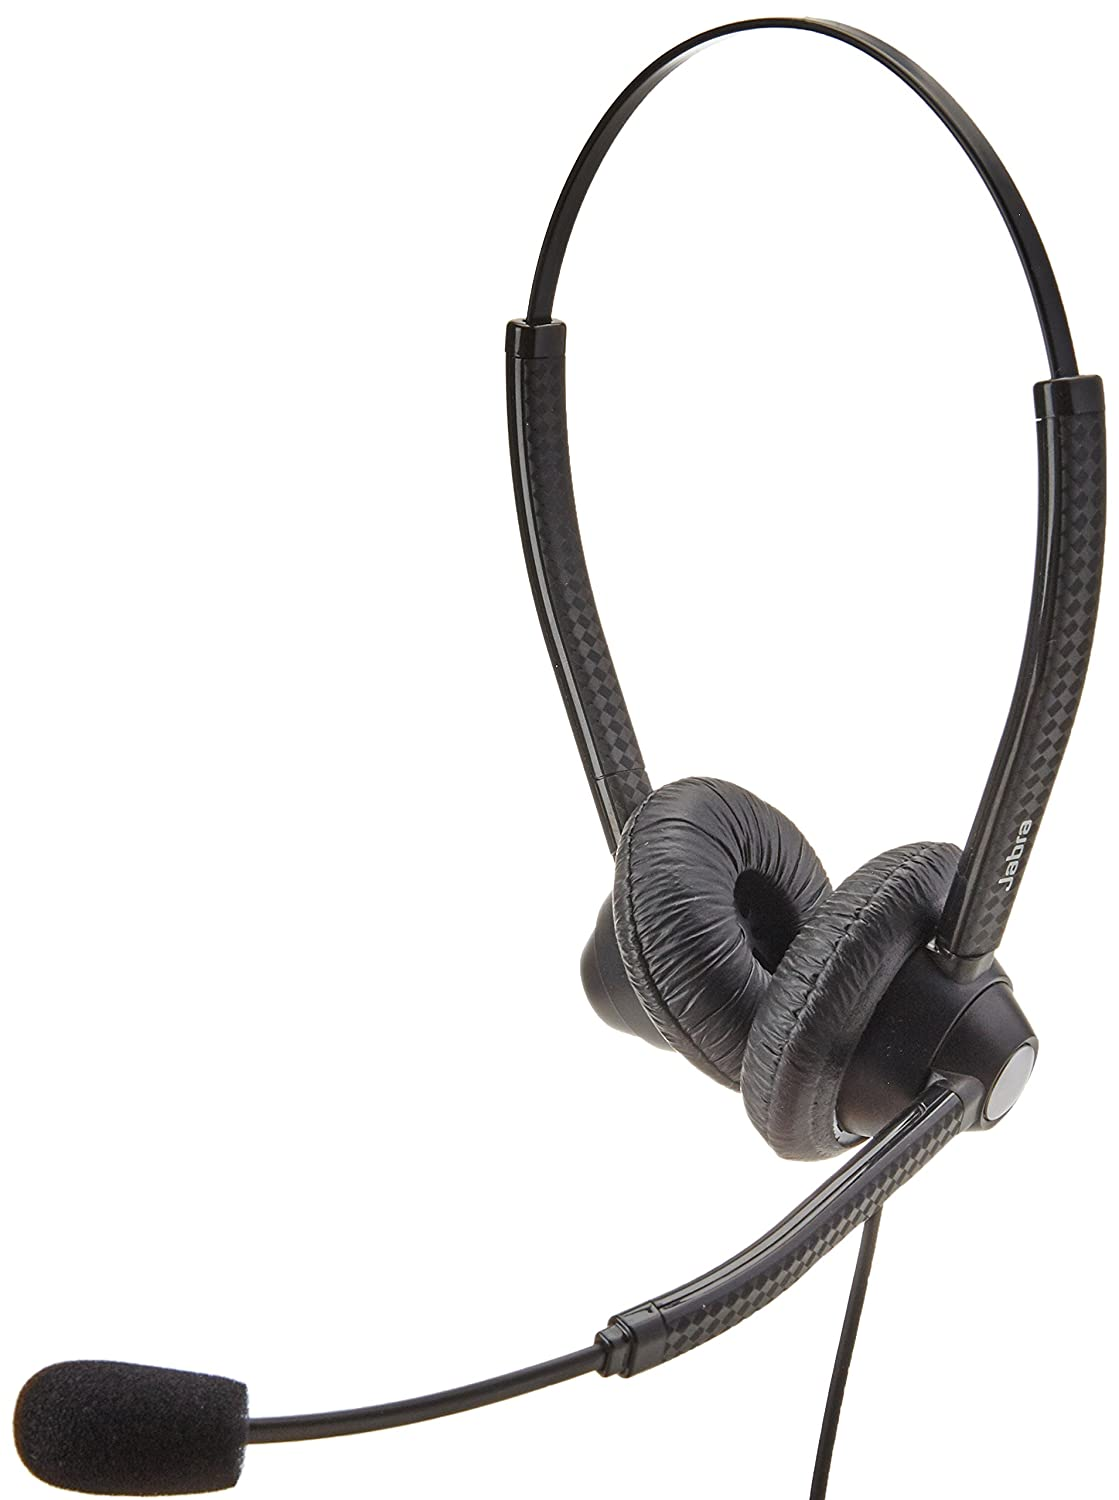 Amazon.com: Jabra Biz 1900 Duo Corded Headset for Deskphone and